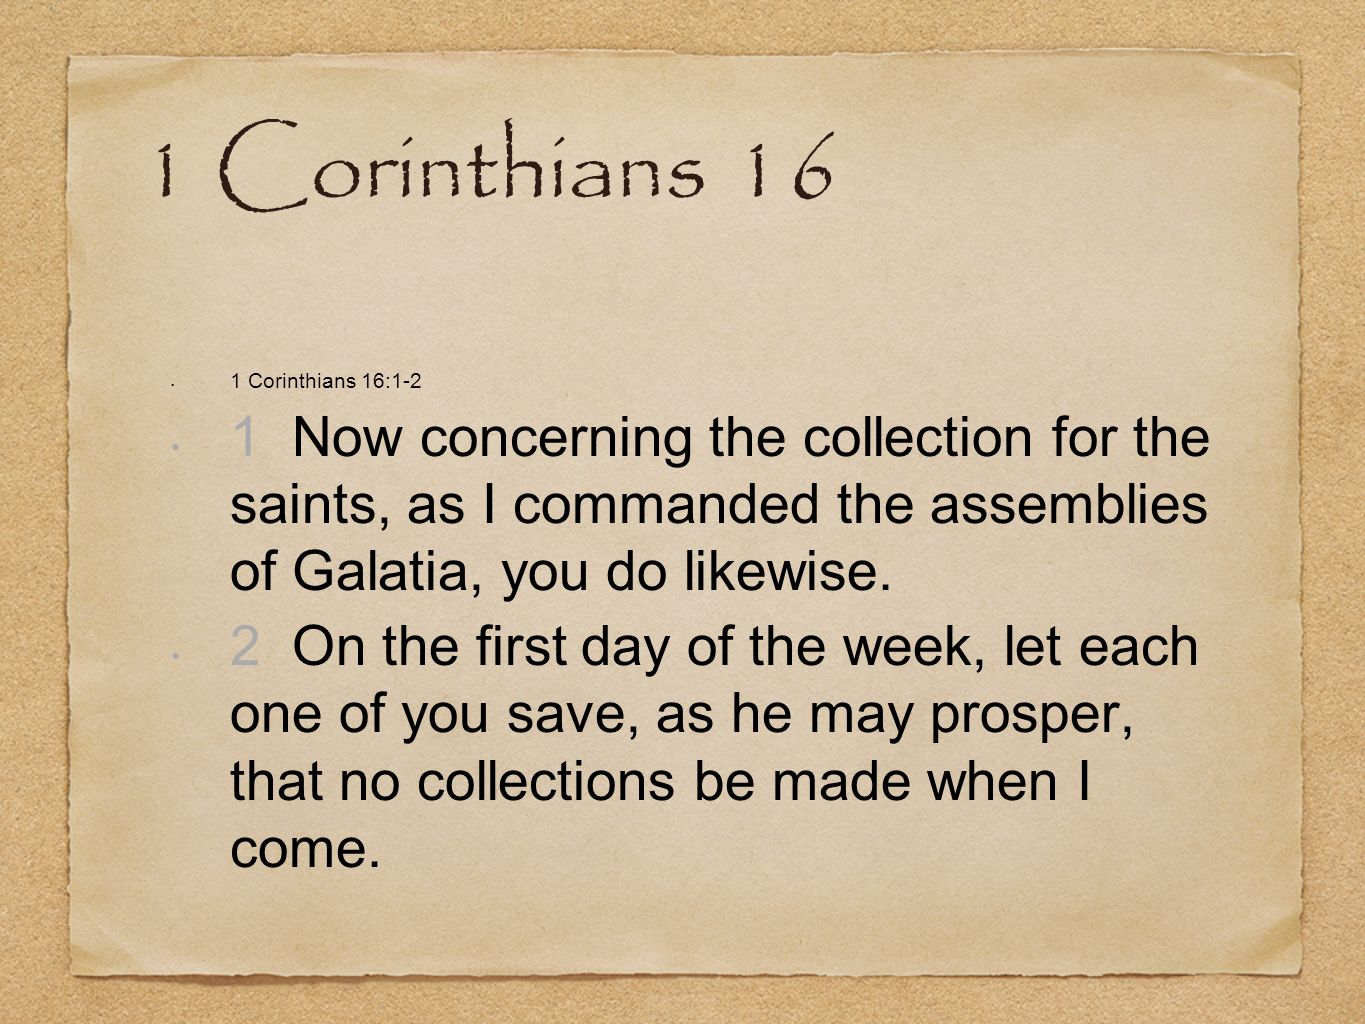 1 Corinthians 16 1 Corinthians 16: Now concerning the collection for the saints, as I commanded the assemblies of Galatia, you do likewise.